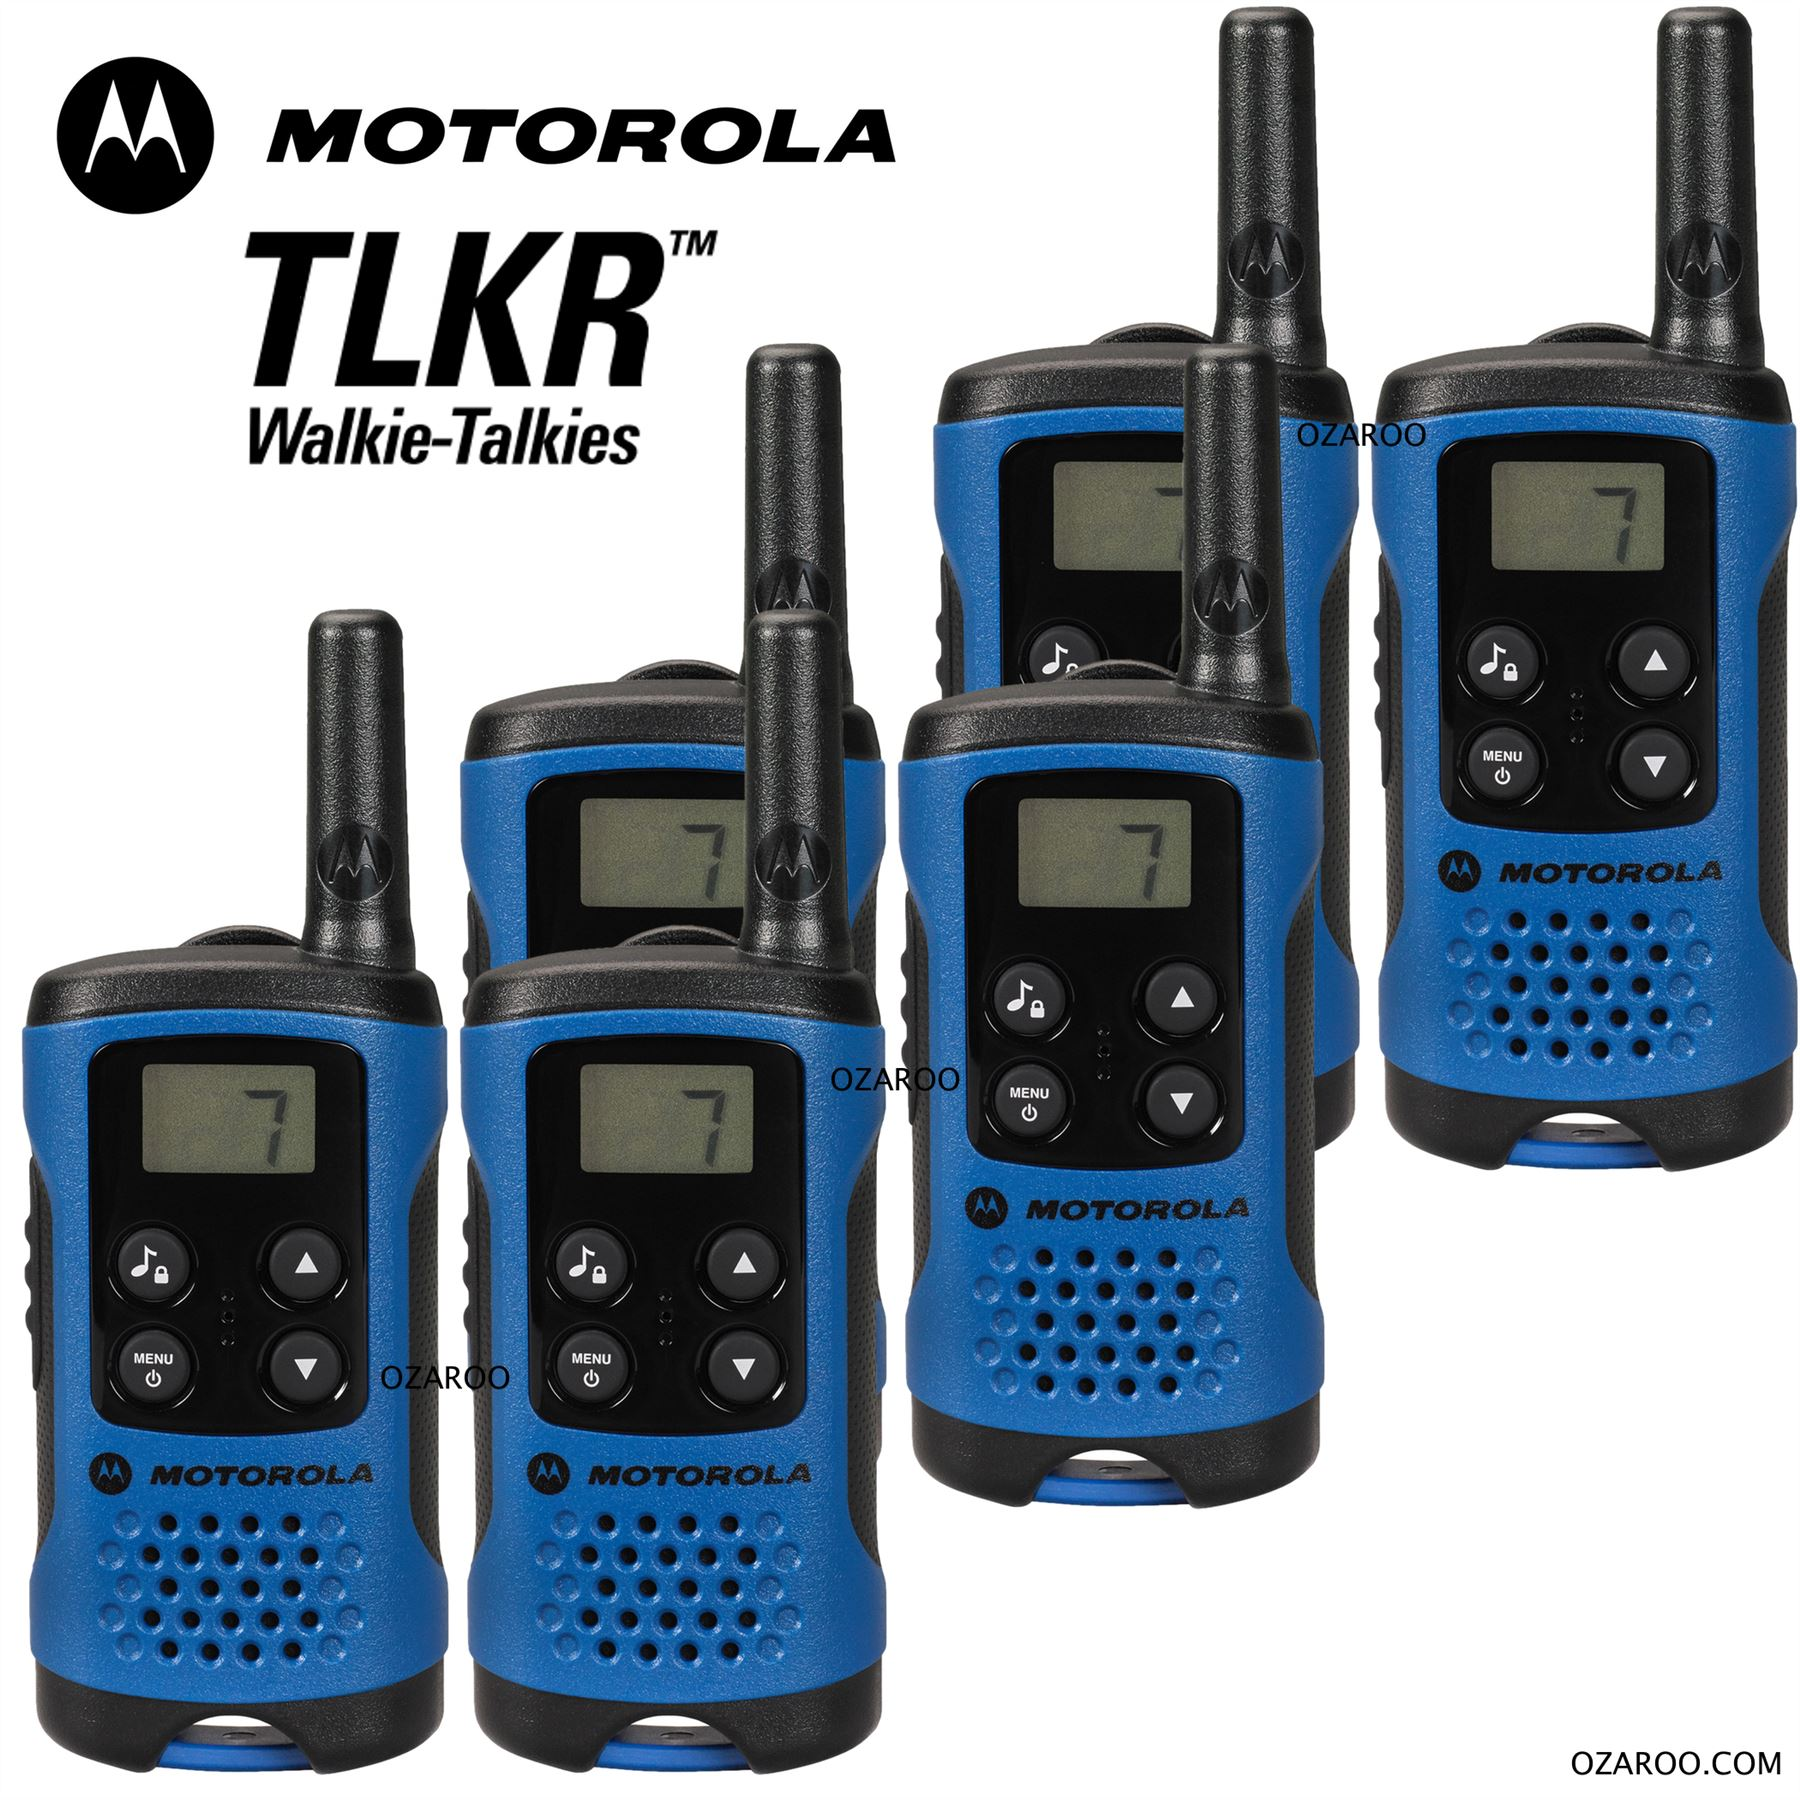 6 x motorola tlkr t41 2 way walkie talkie set pmr 446 radio kit blue six pack ebay. Black Bedroom Furniture Sets. Home Design Ideas